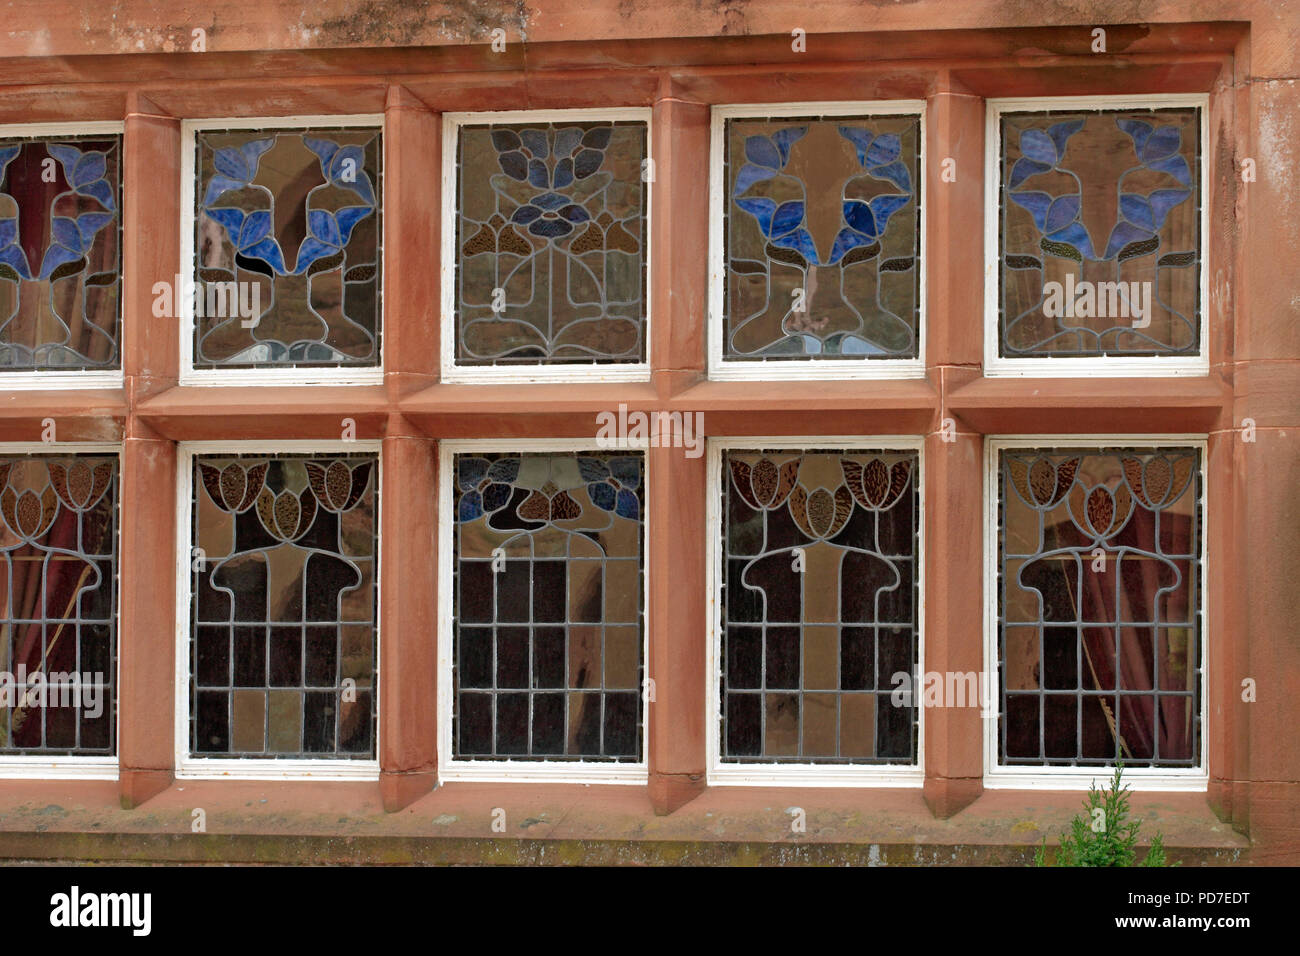 Stained Glass windows - Stock Image